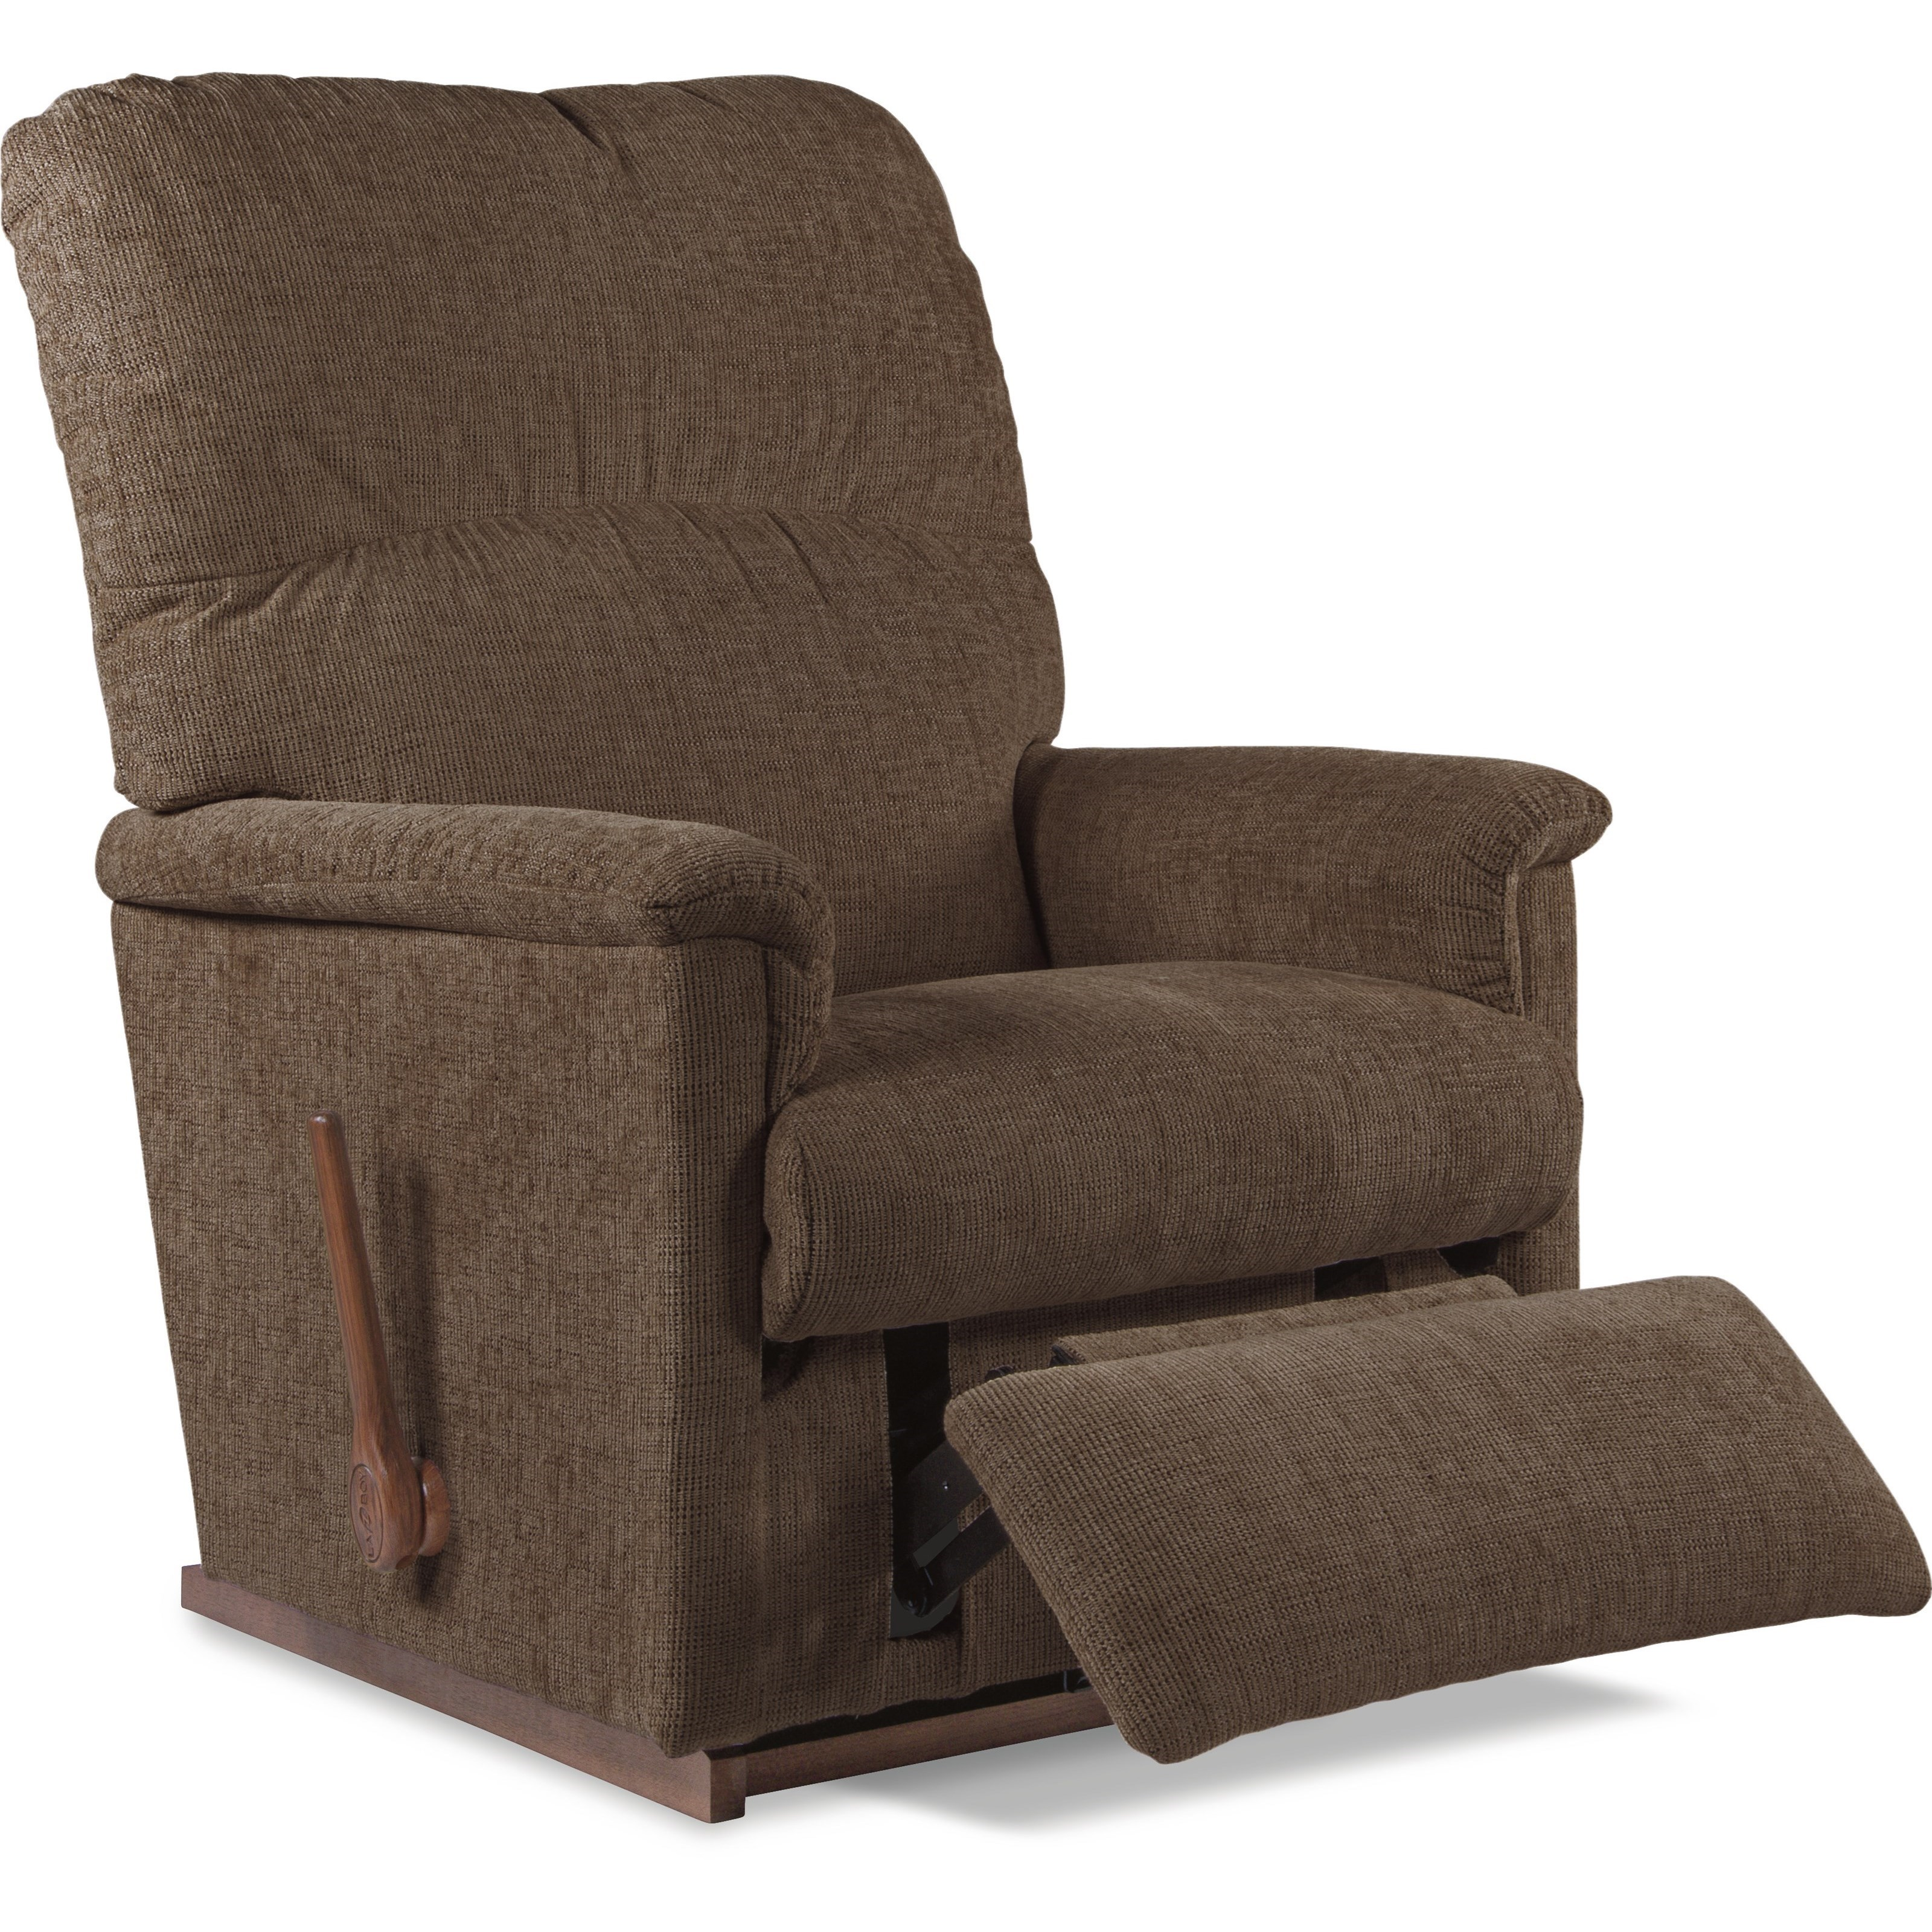 La-Z-Boy Collage Wall-Away Recliner - HomeWorld Furniture - Three Way Recliners